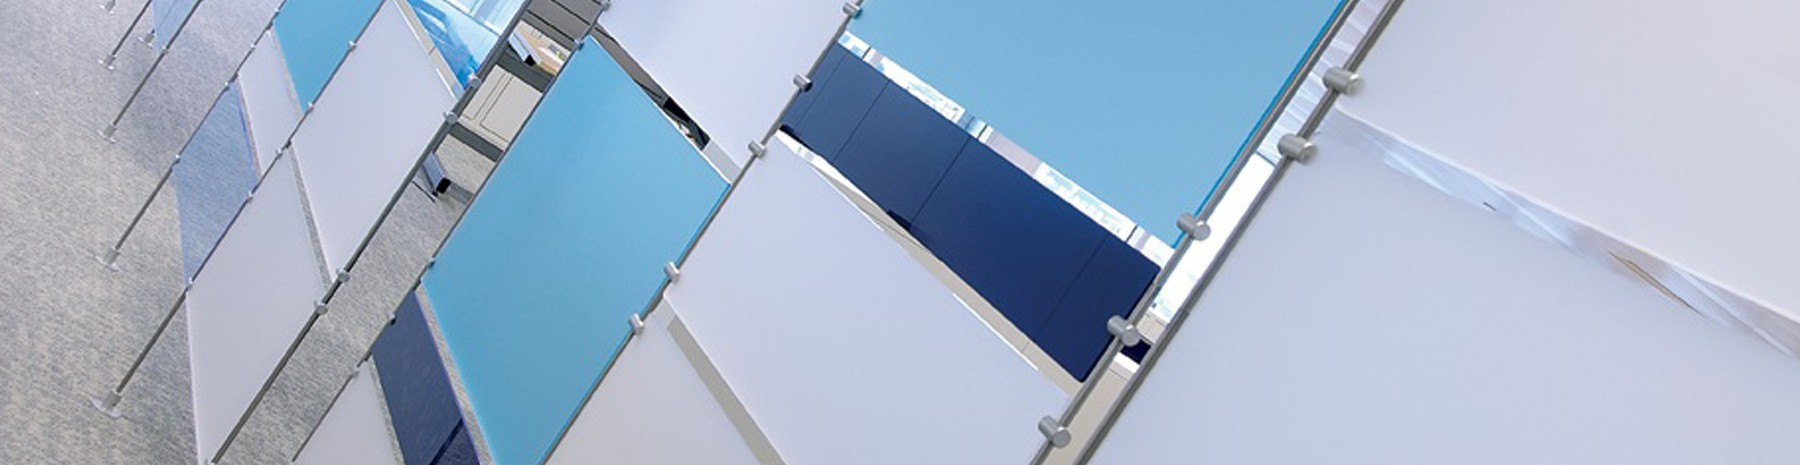 Rod Display Ø 10mm for suspended display and signage